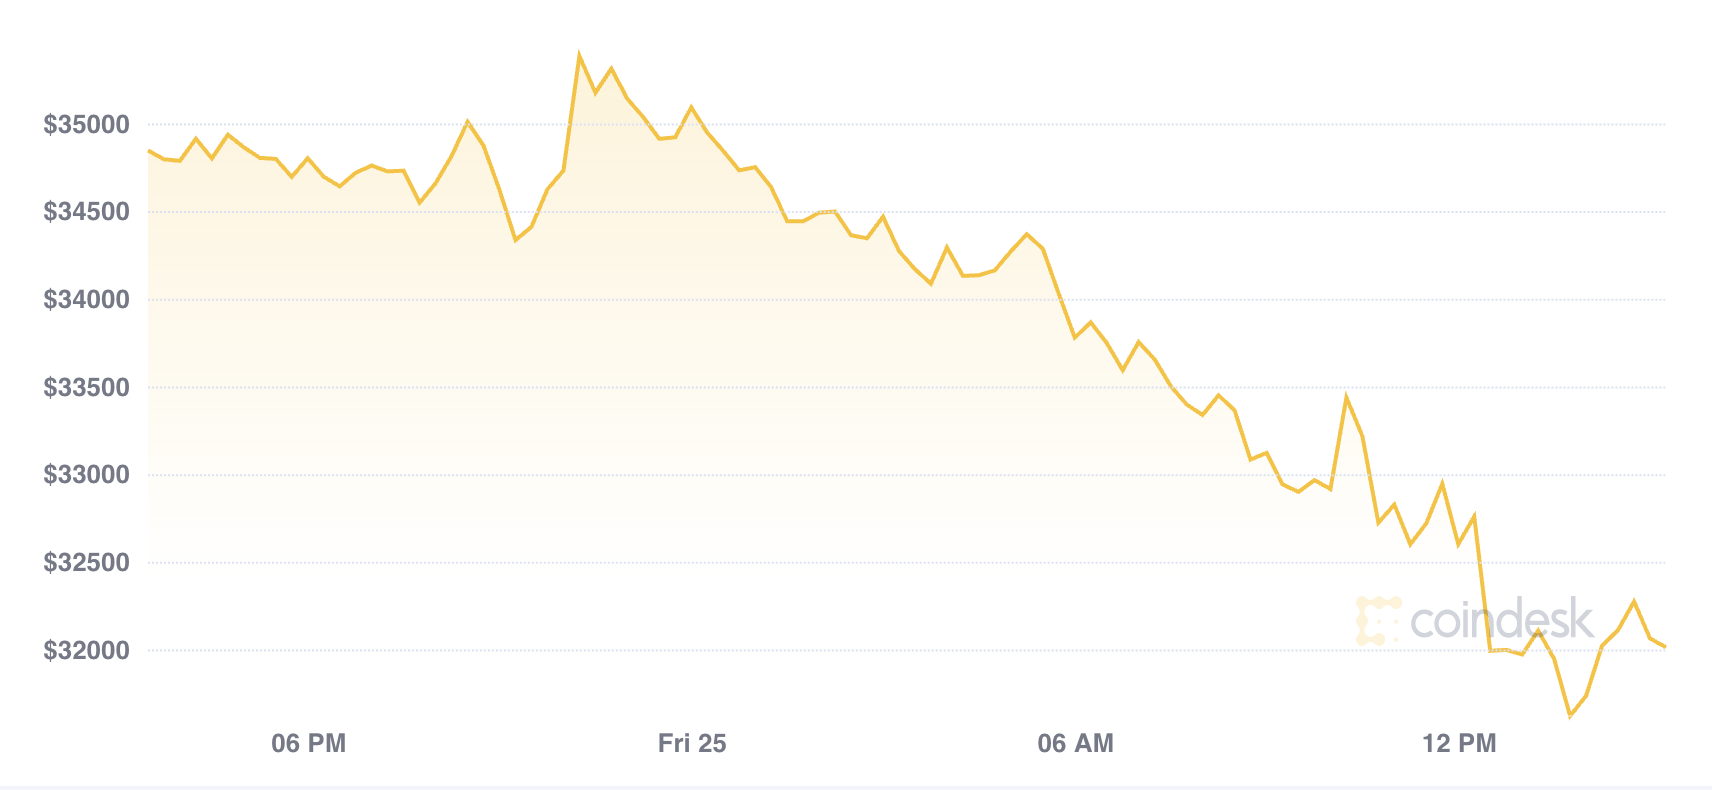 Market Wrap: Bitcoin Declines Into the Weekend, as Volatile Month Continues